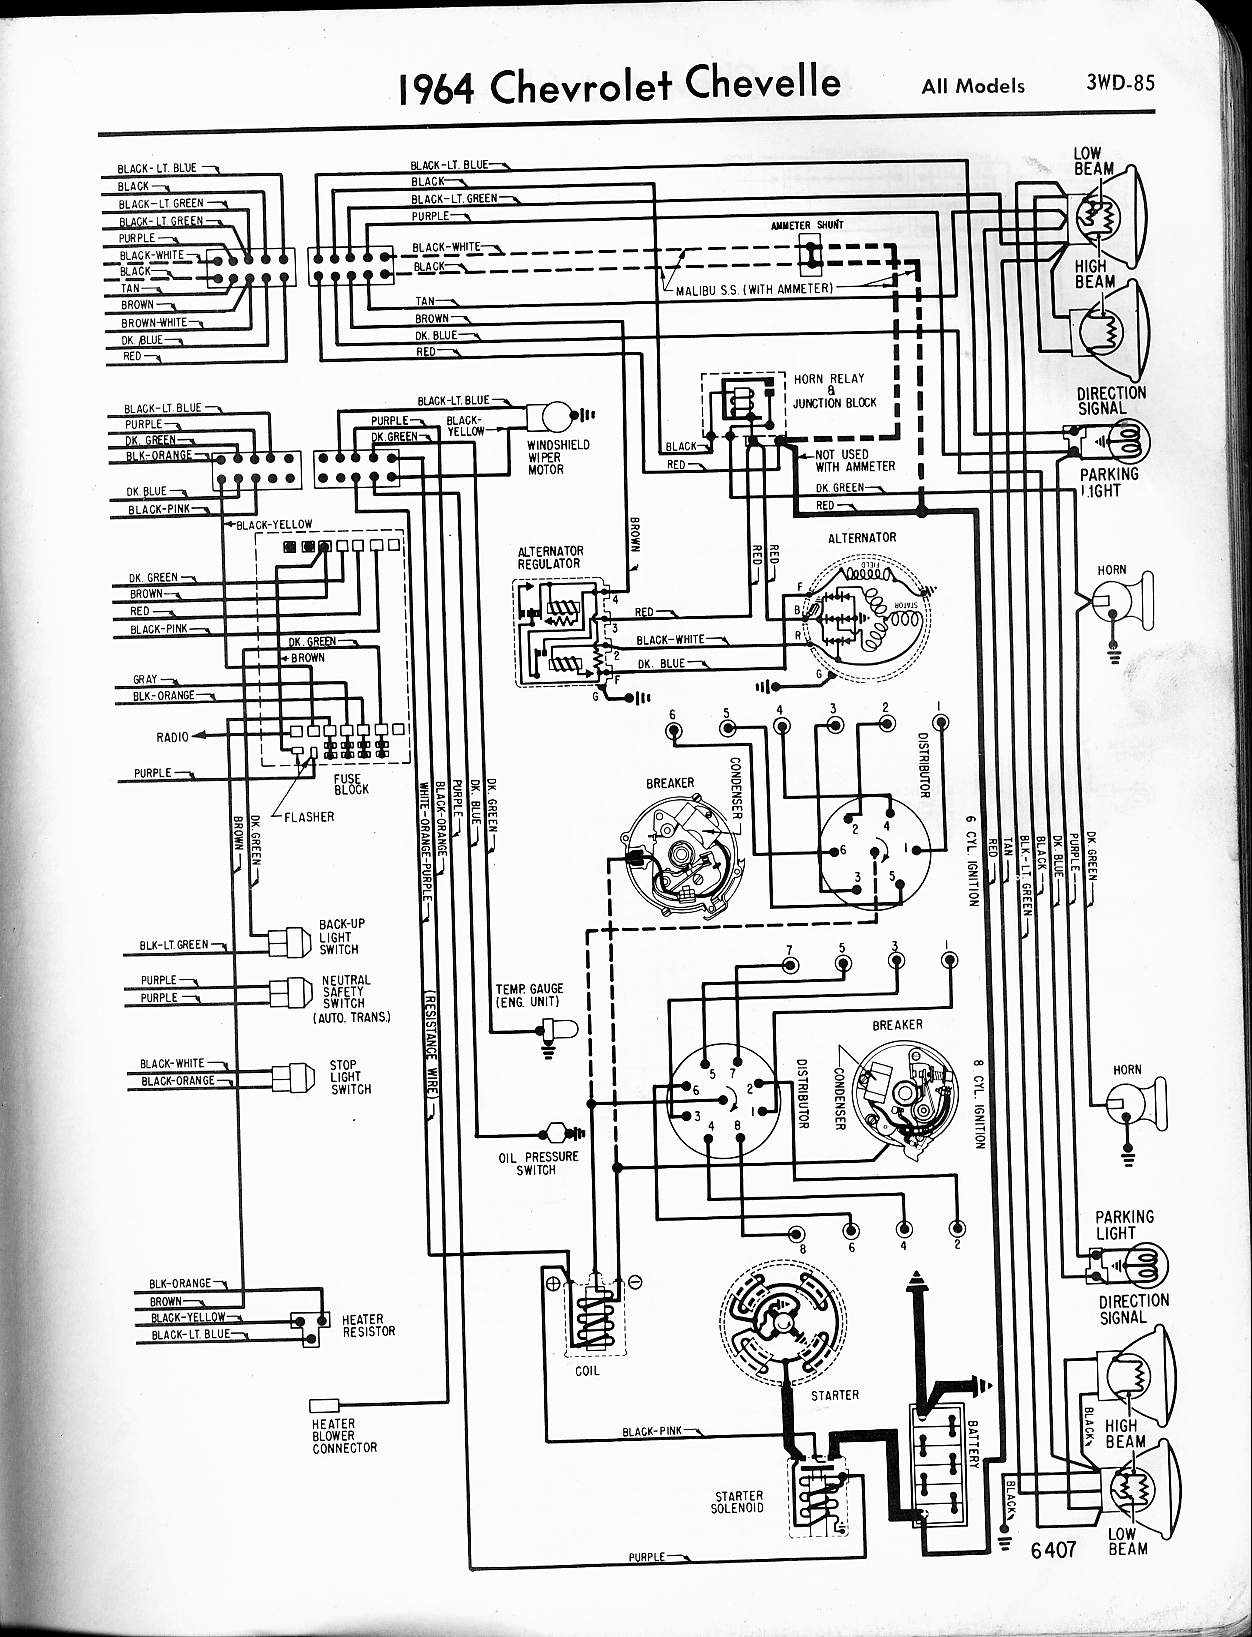 Chevy 4 2l Engine Diagram Wiring Library Astro Van Harness 1966 El Camino Starting Know About U2022 1959